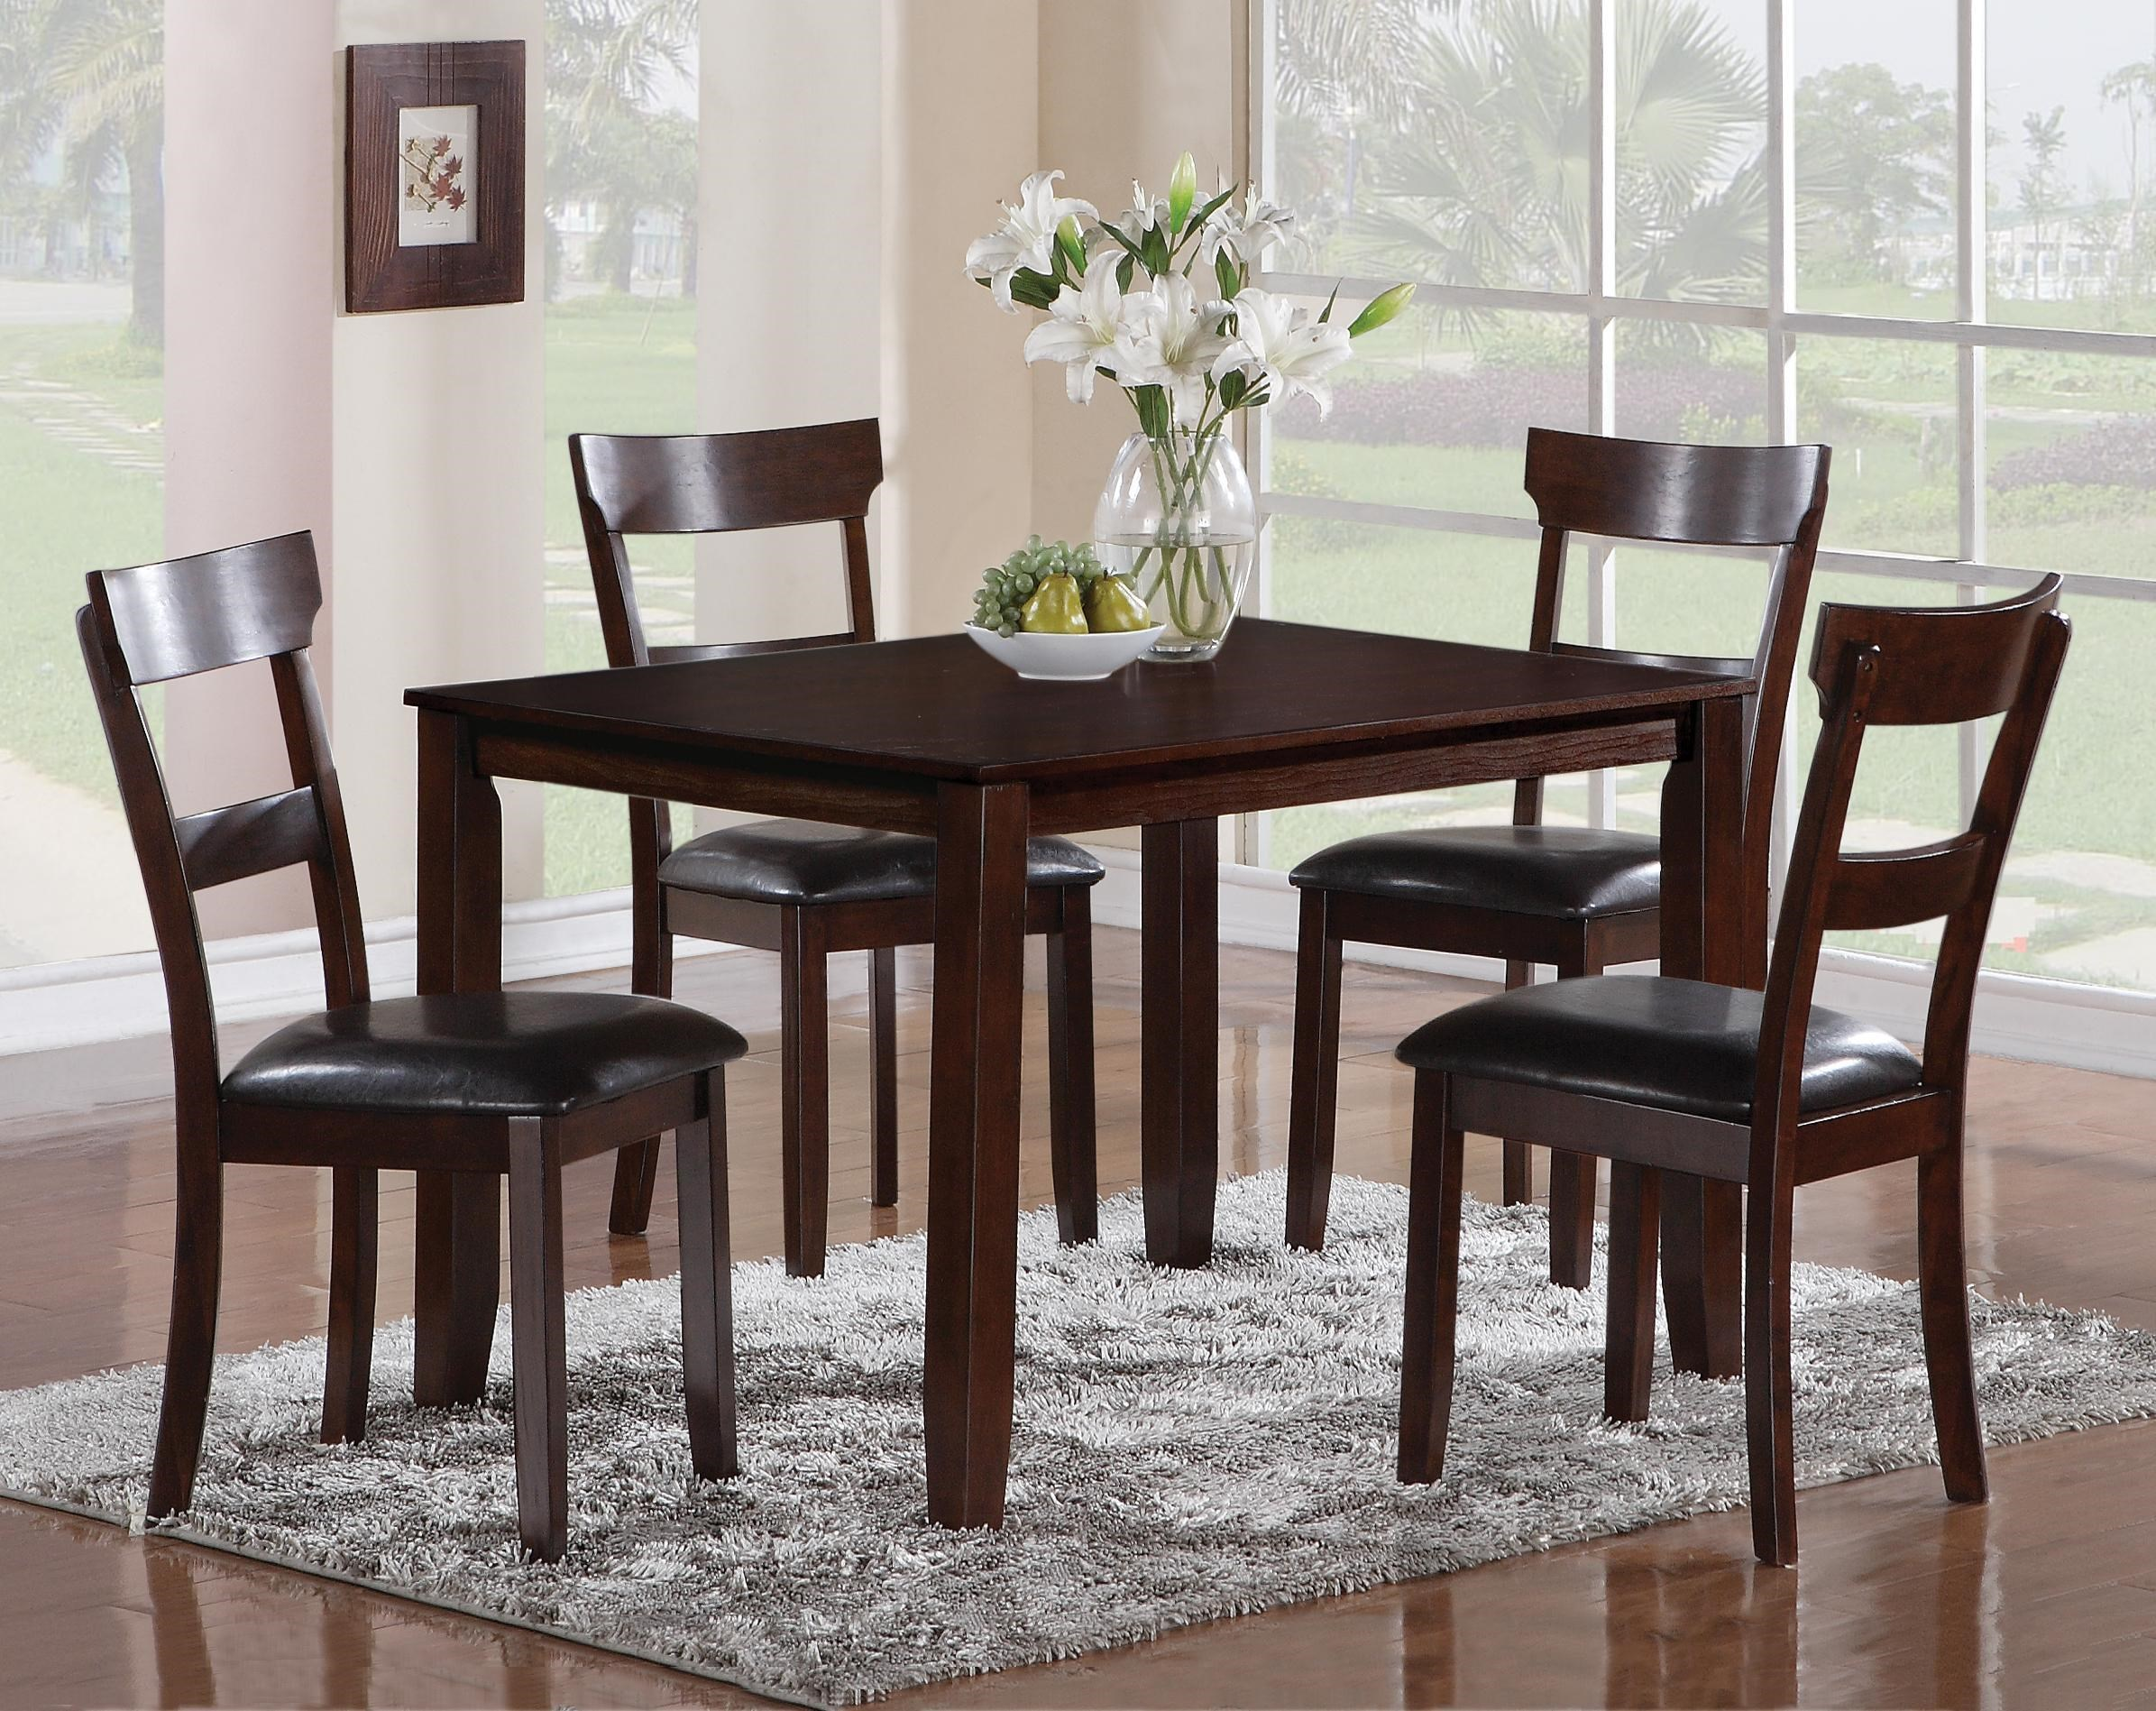 Henderson 5 Piece Dining Table And Chair Set   Belfort Furniture   Dining 5  Piece Sets